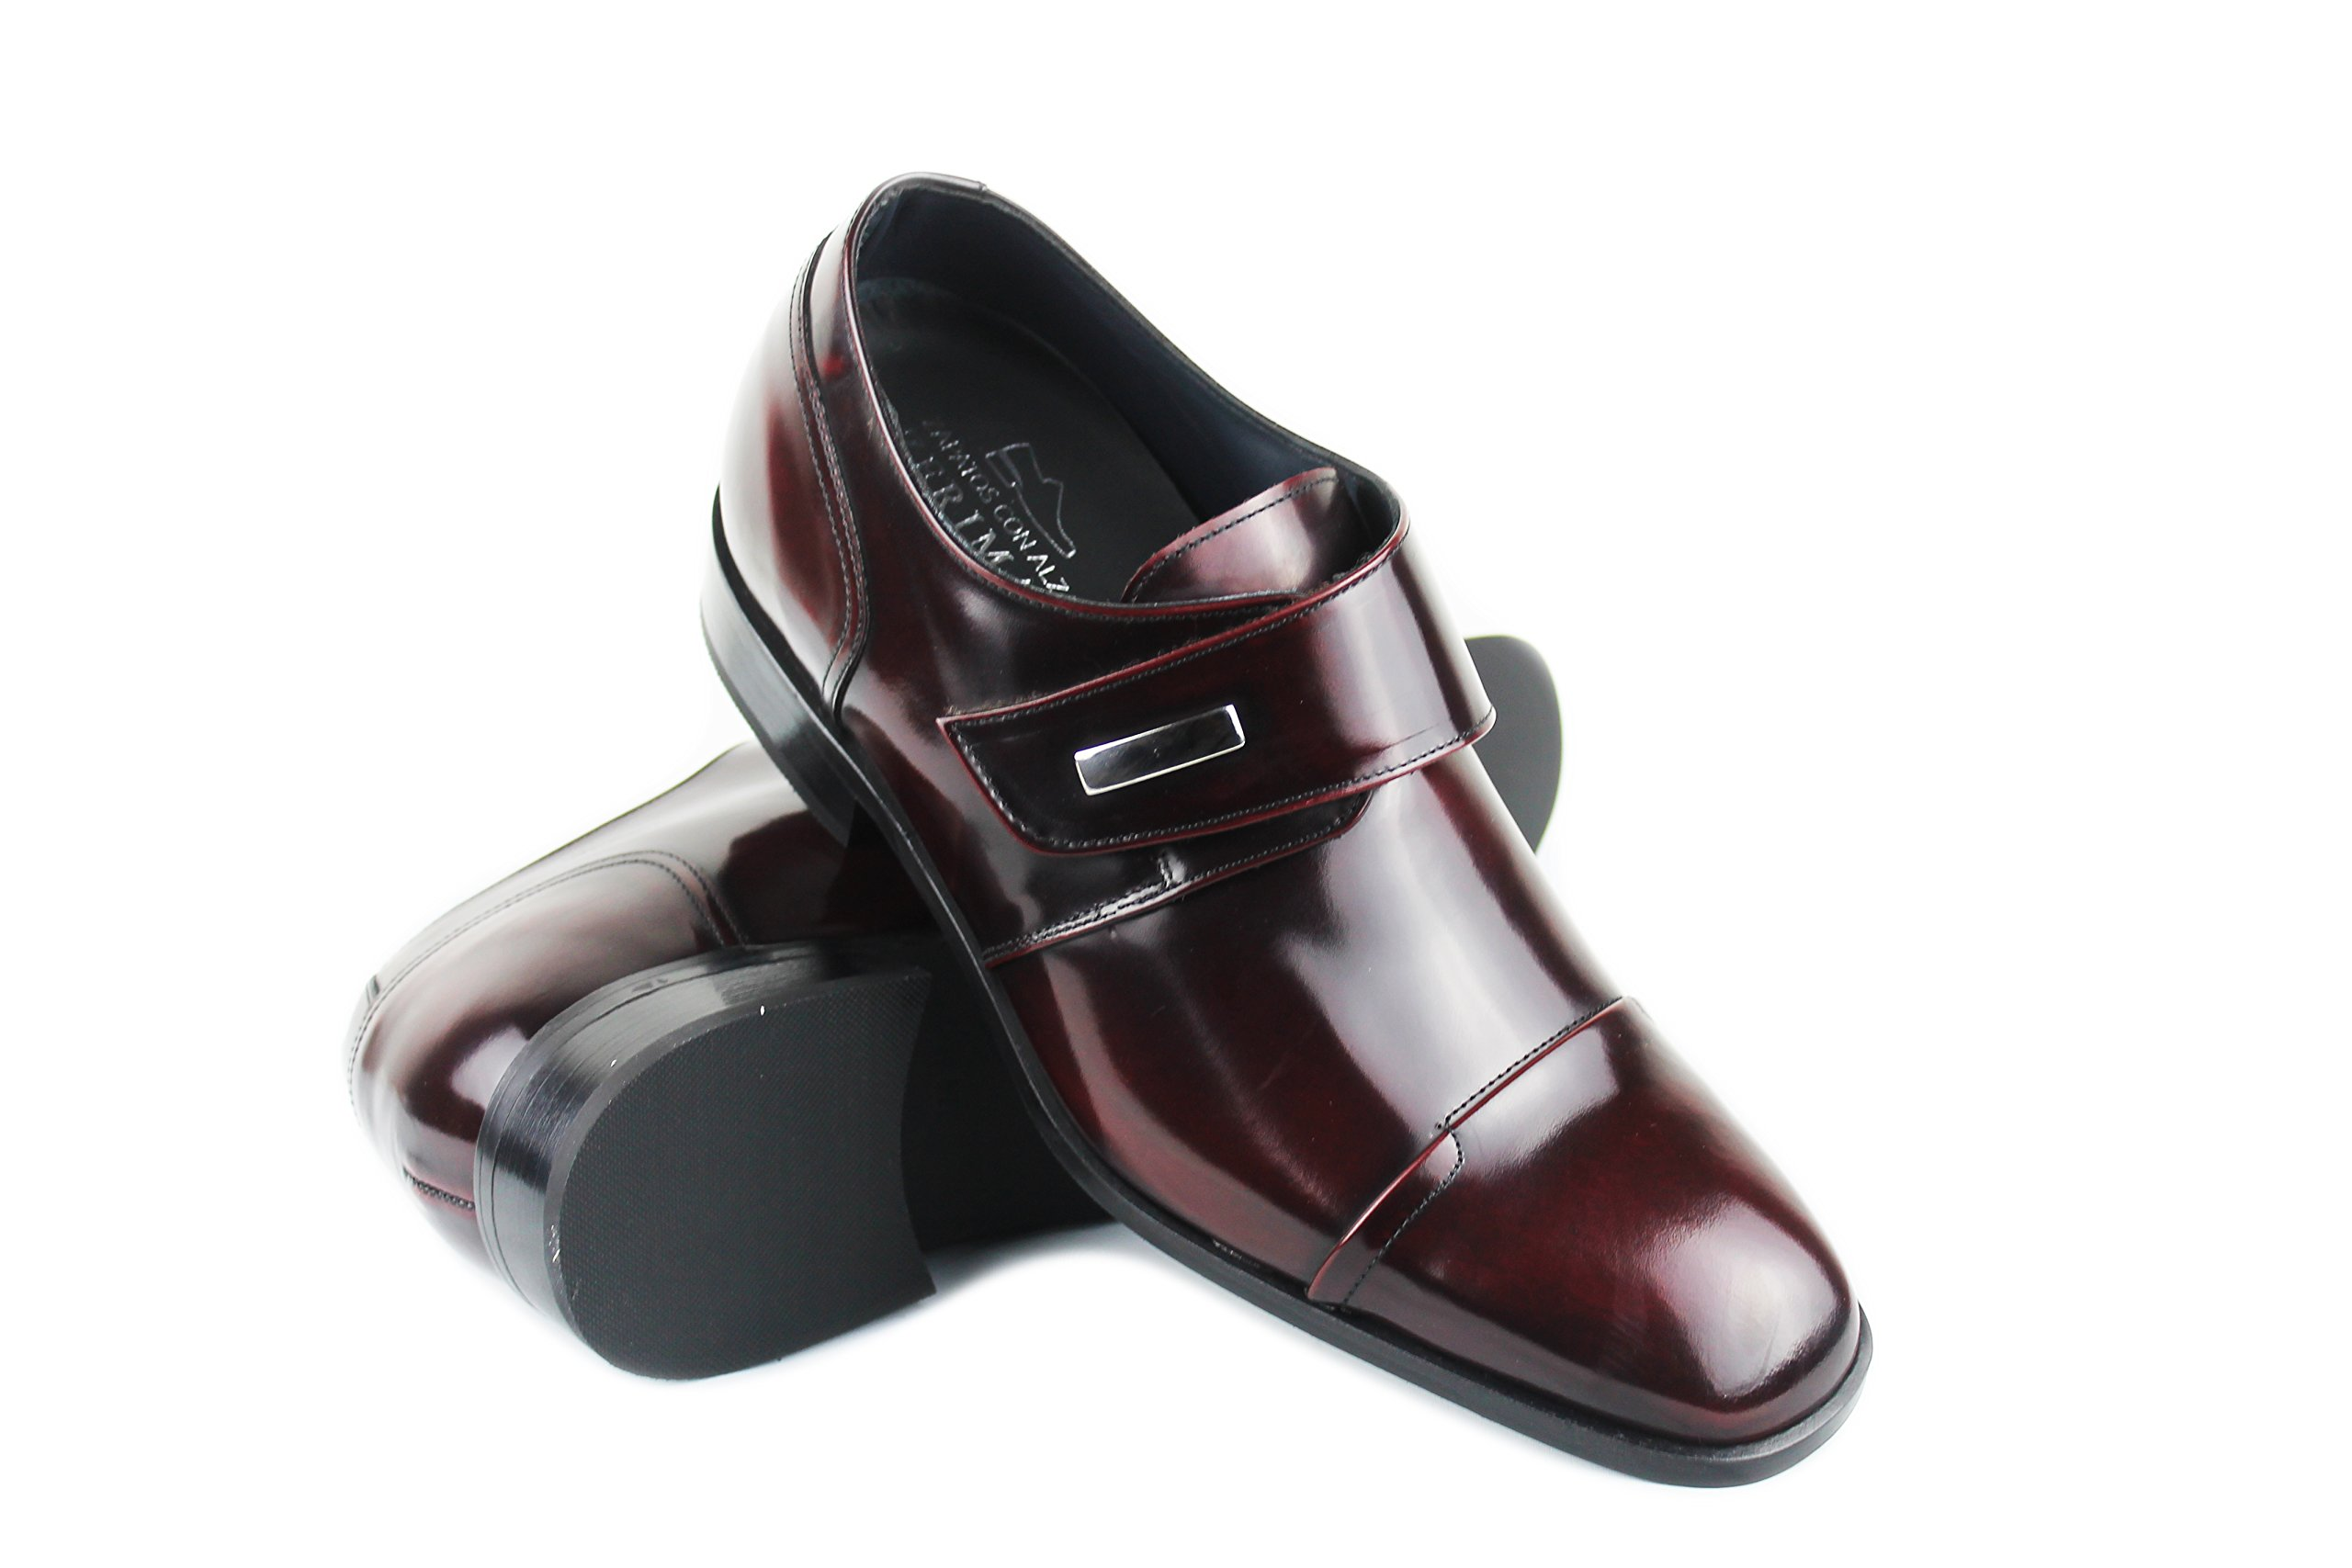 ZERIMAR height Increasing Elevator Shoes For Men Add +2,8 Inch To Your height Quality 100% Leather Shoes Color Bordeaux Size EU 39 US 7.5 by Zerimar